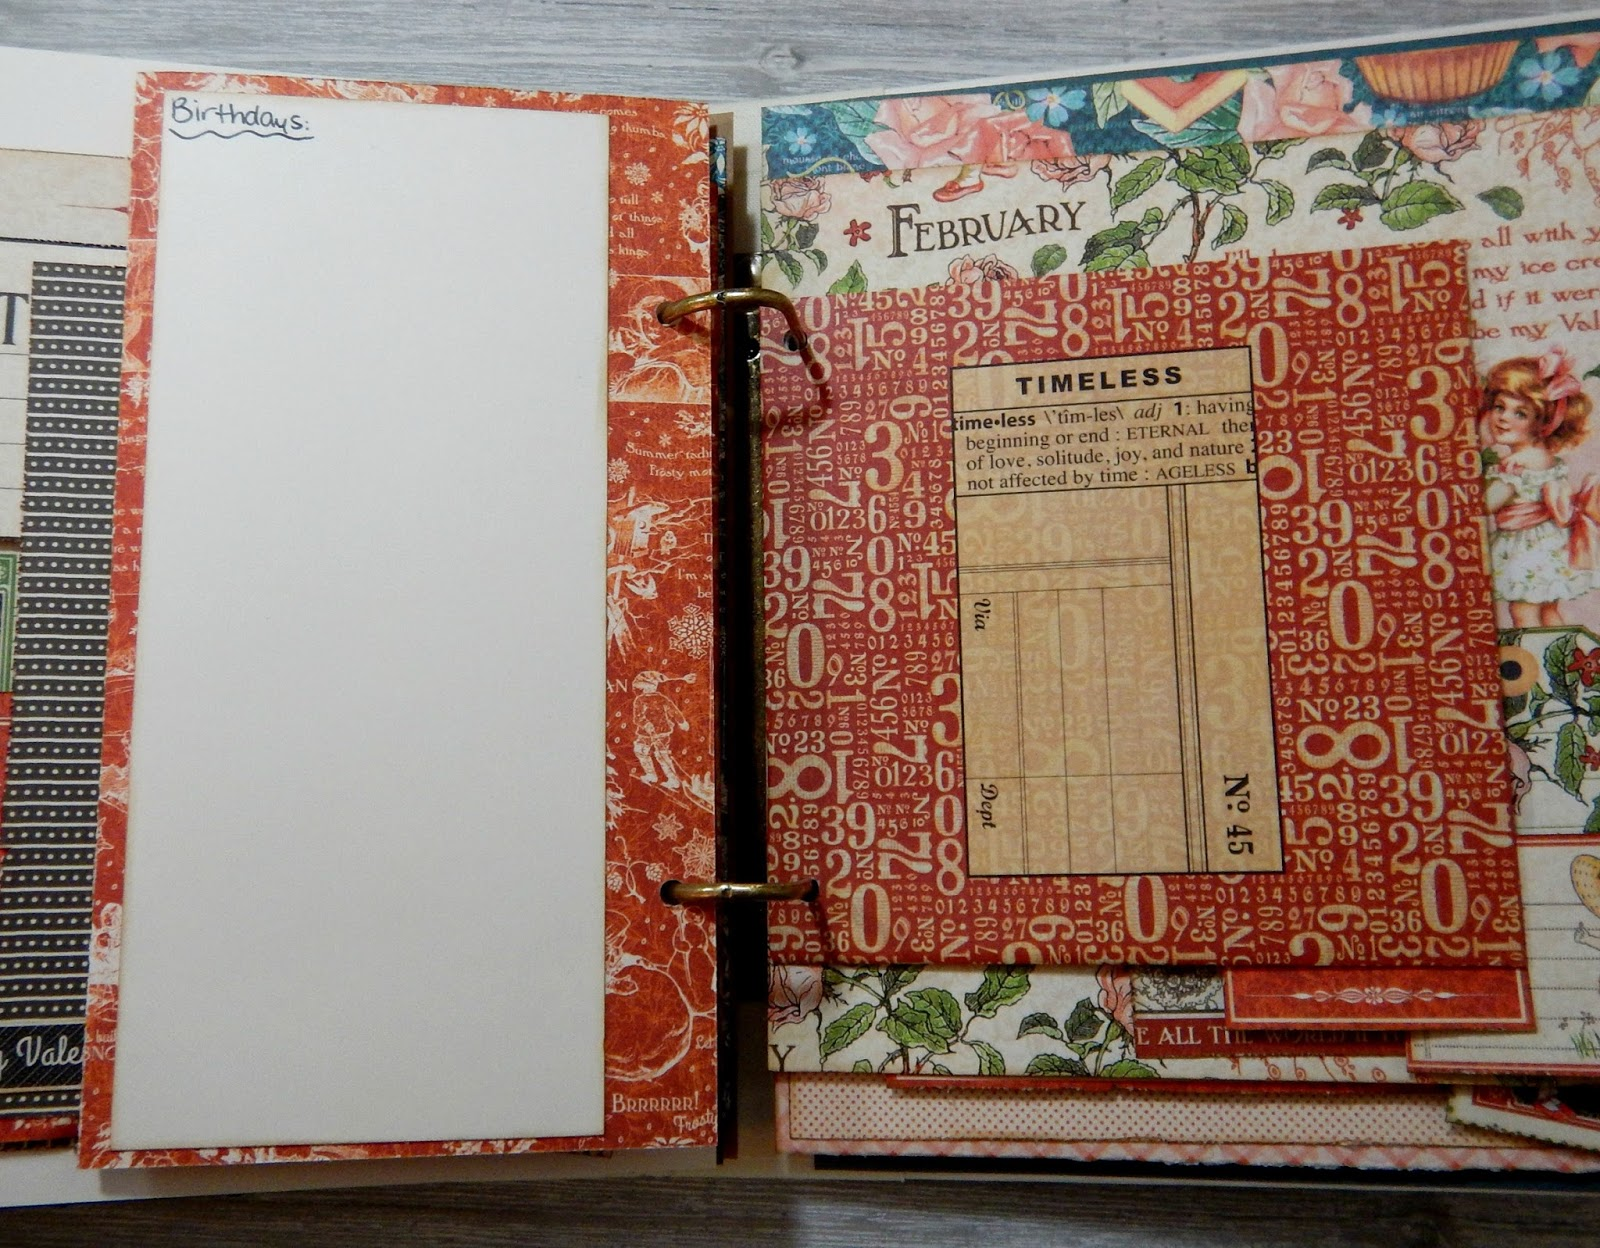 How to delete scrapbook photos google+ - Tip Add Different Size Papers And Fold Outs Into Your Planner To Add Some Extra Interest As Well As Give You More Space To Document Your Memories